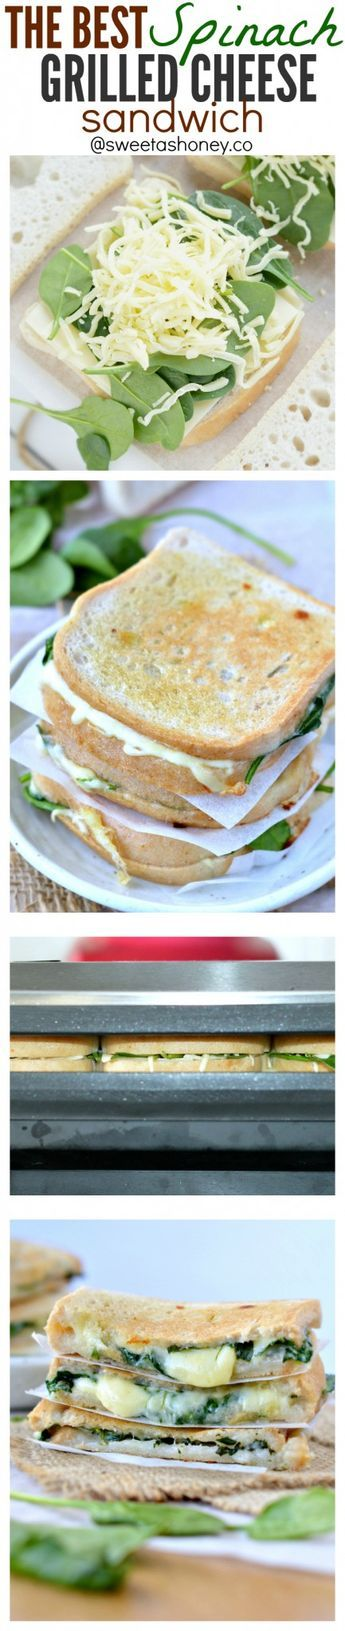 The best grilled cheese sandwich you will ever had made a bit healthier with spinach !. Check out my secret triple cheese combo to create THE MOST gooey spinach grilled cheese sandwich EVER with crispy grilled bread. Best comfort food on earth!